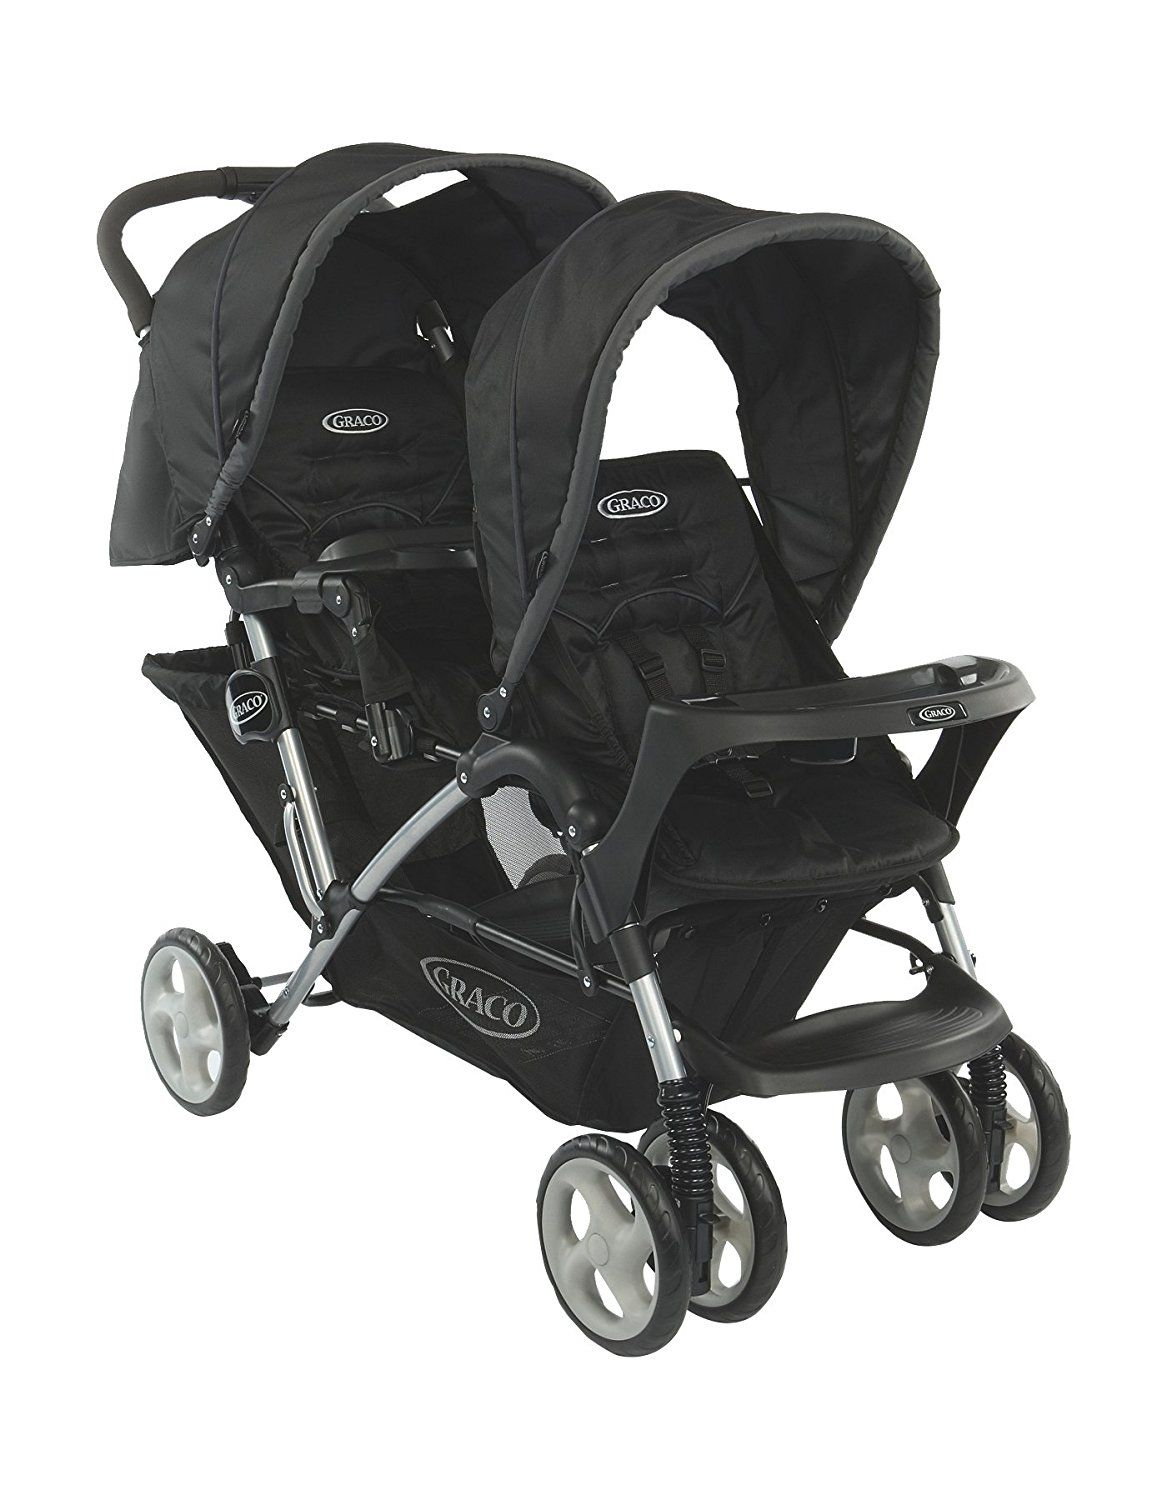 Graco Ready2grow Click Connect LX Stroller Review (With